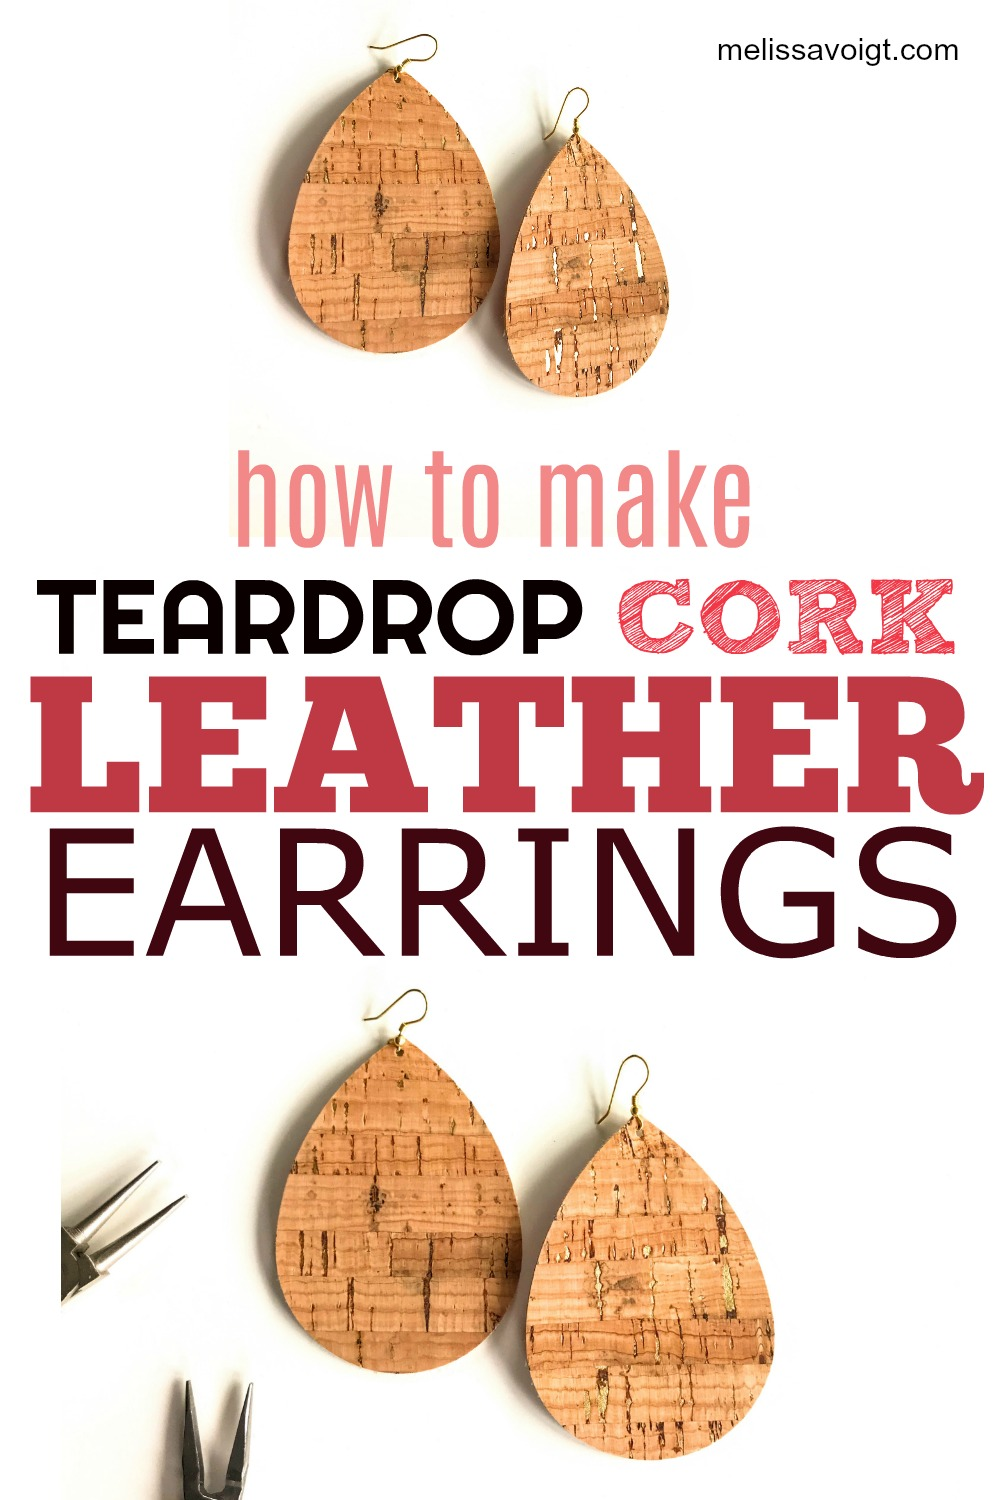 TEARDROP CORK LEATHER SVG.jpg